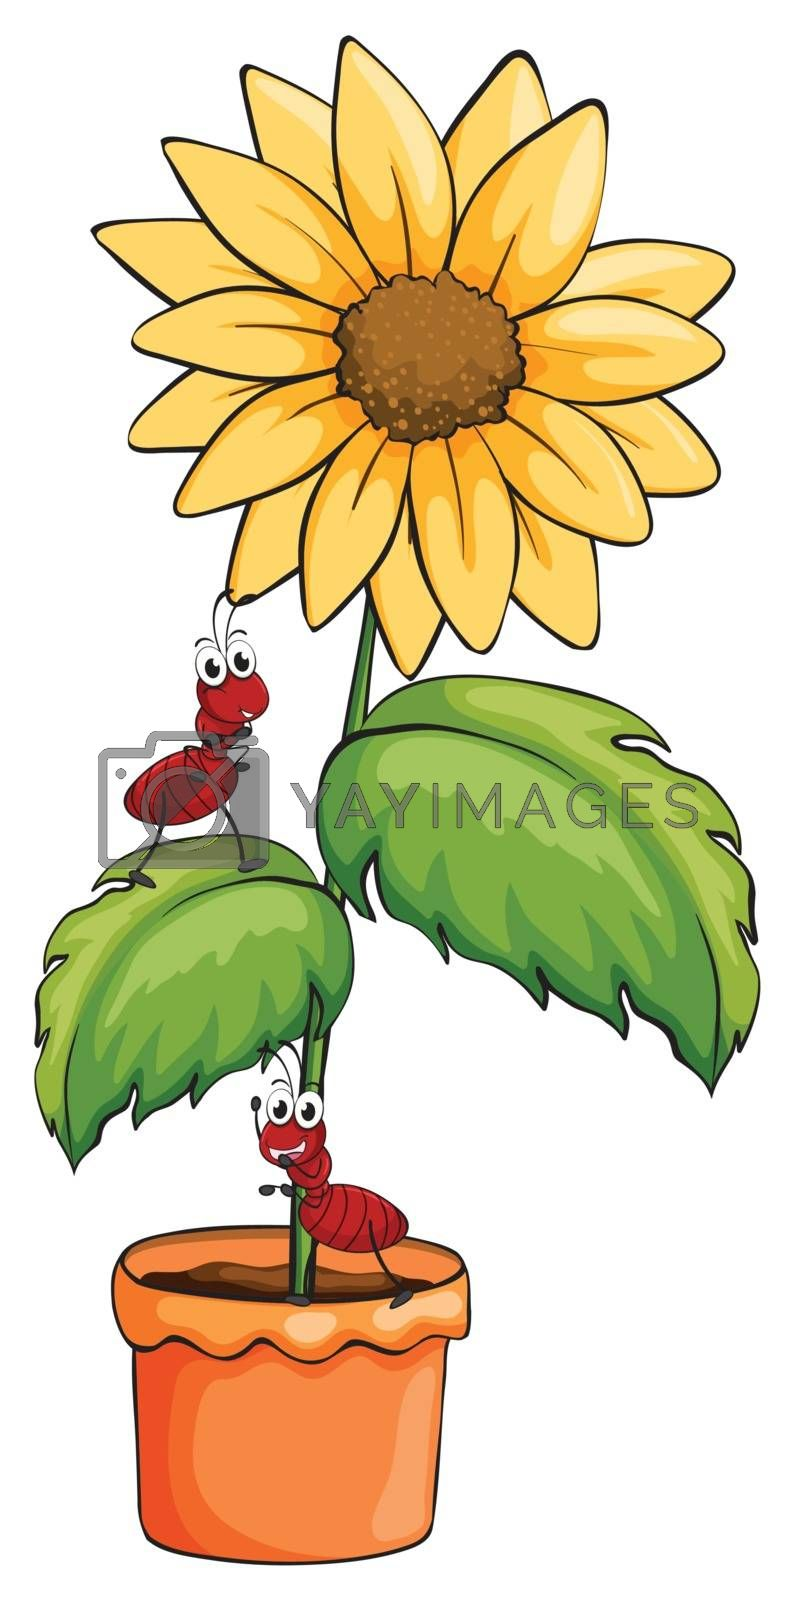 Illustration of a sunflower with two ants on a white background